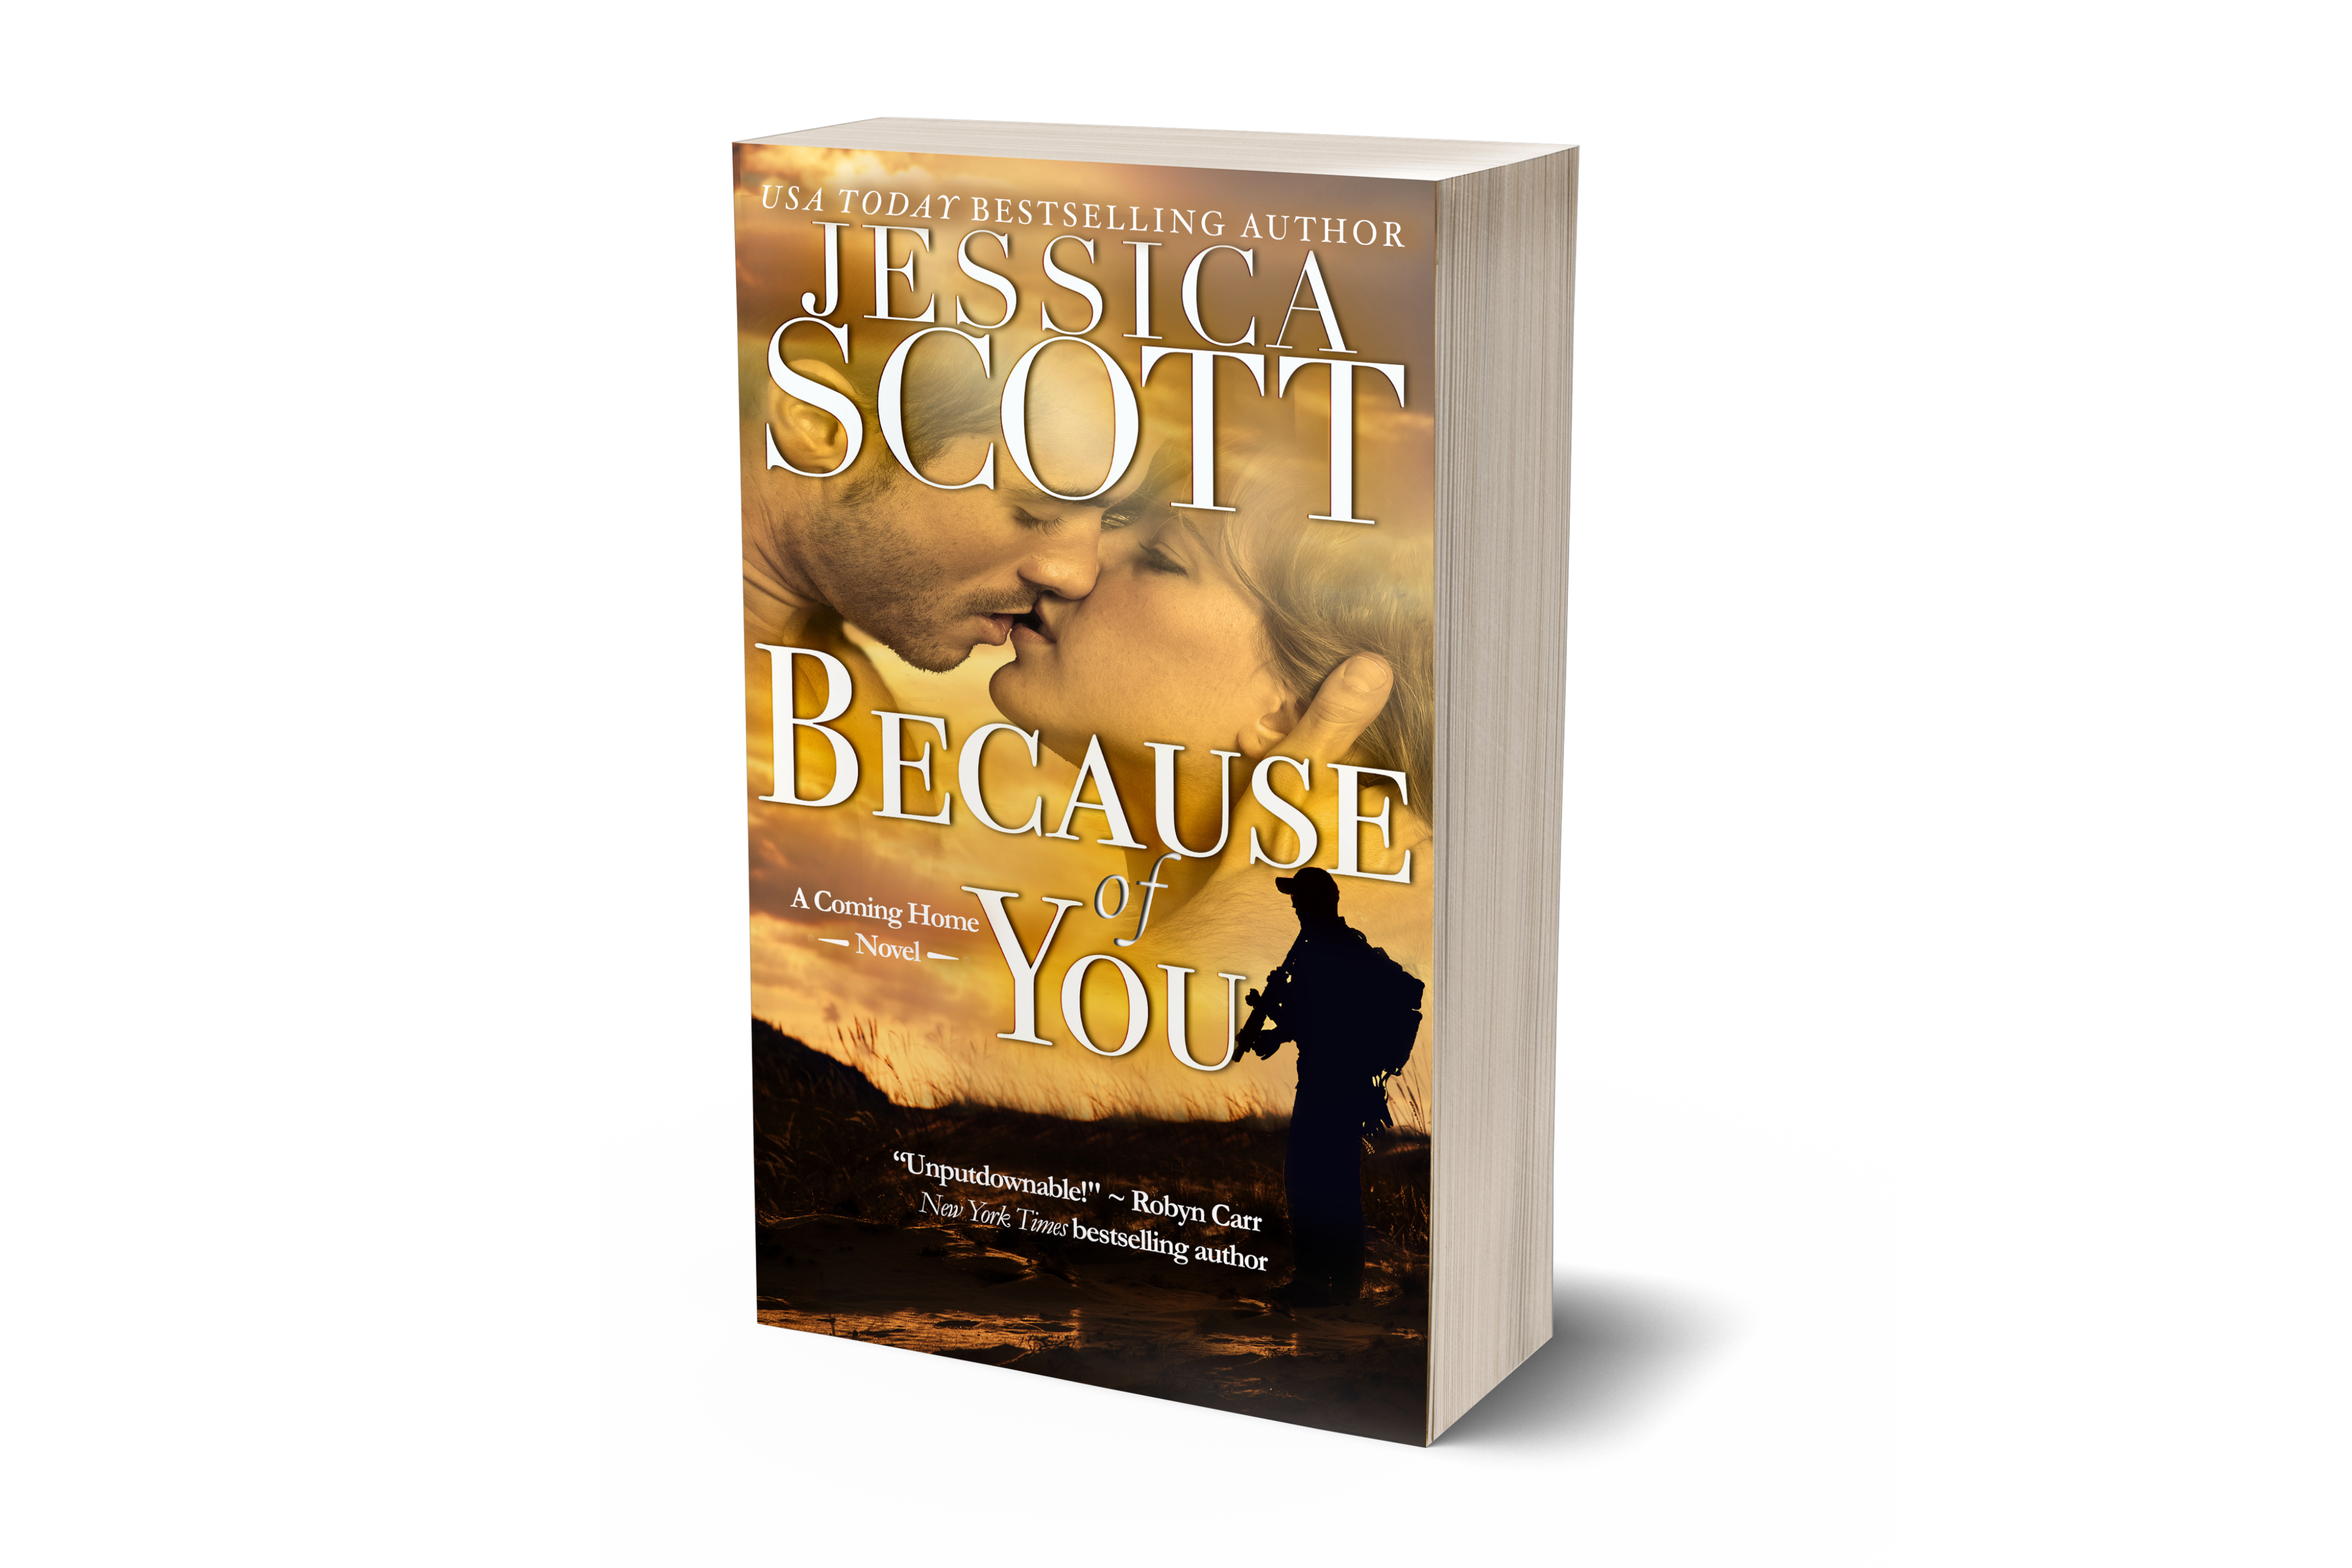 Because of You - Trade Paperback